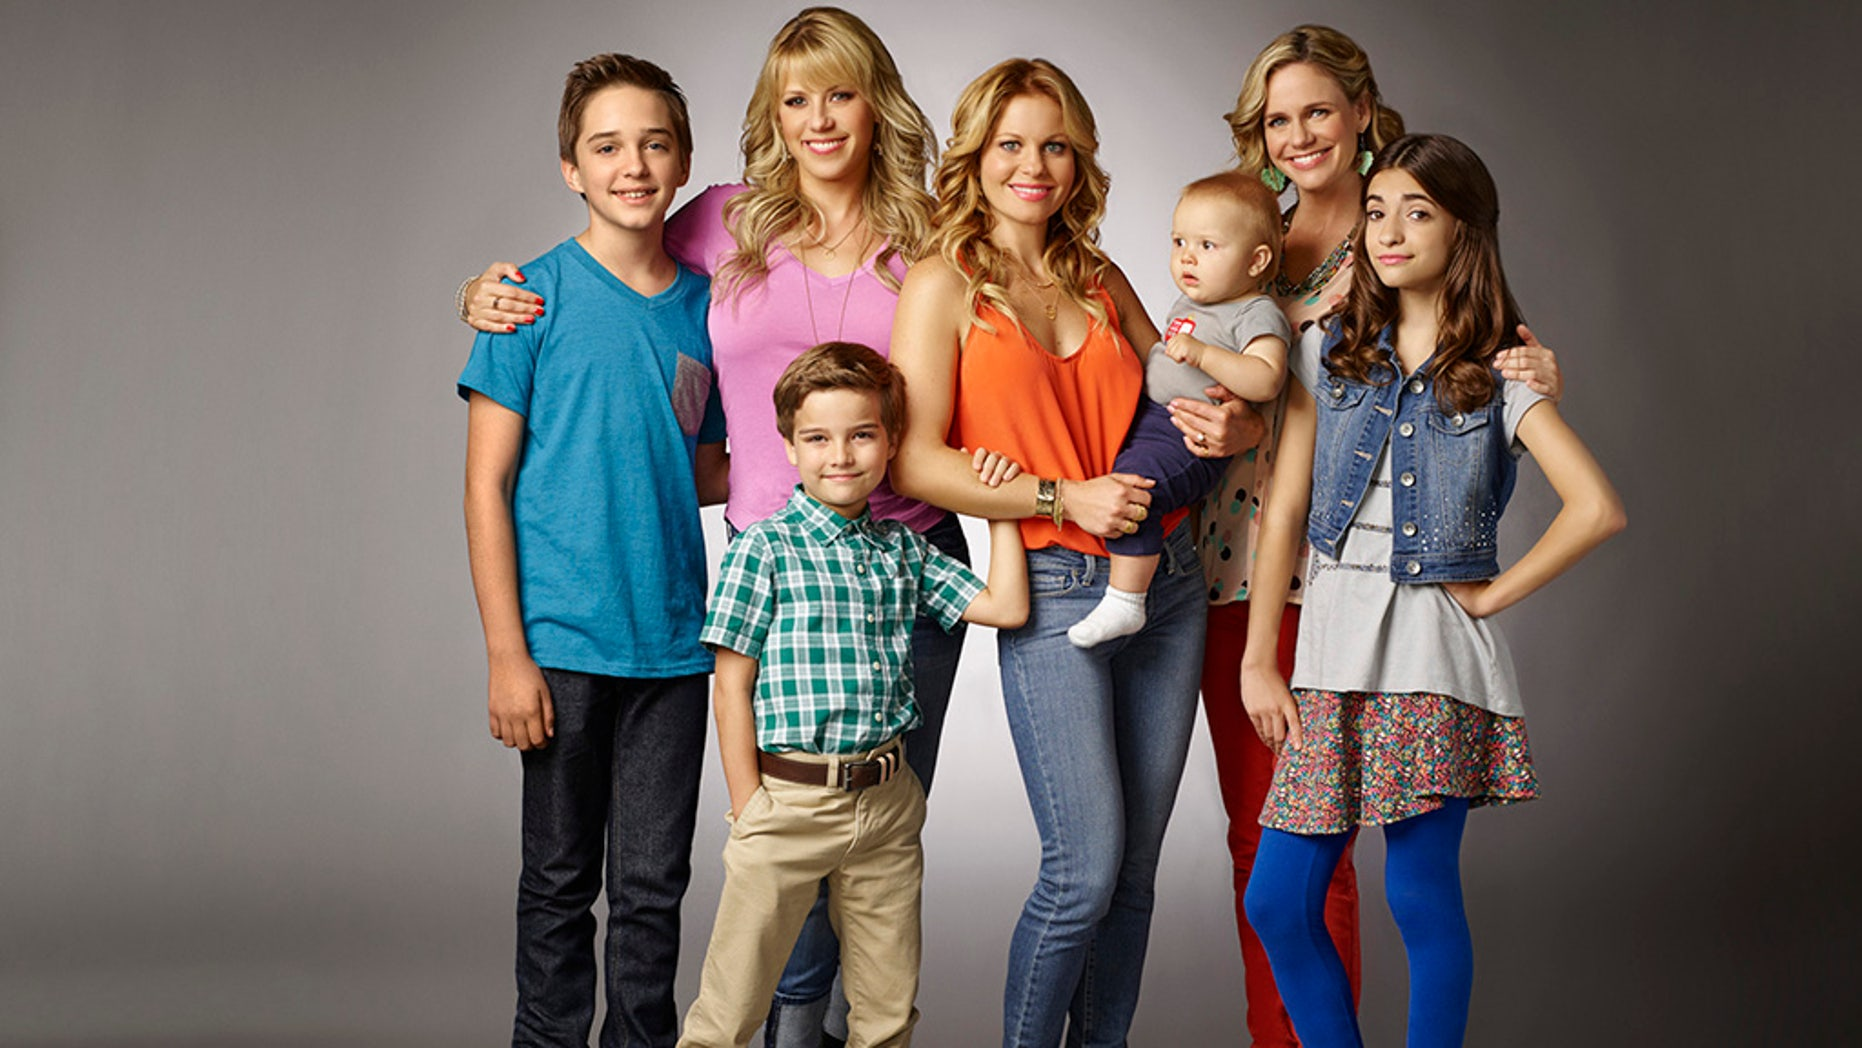 """Fuller House"" Season 5 will also be its last, Netflix announced."